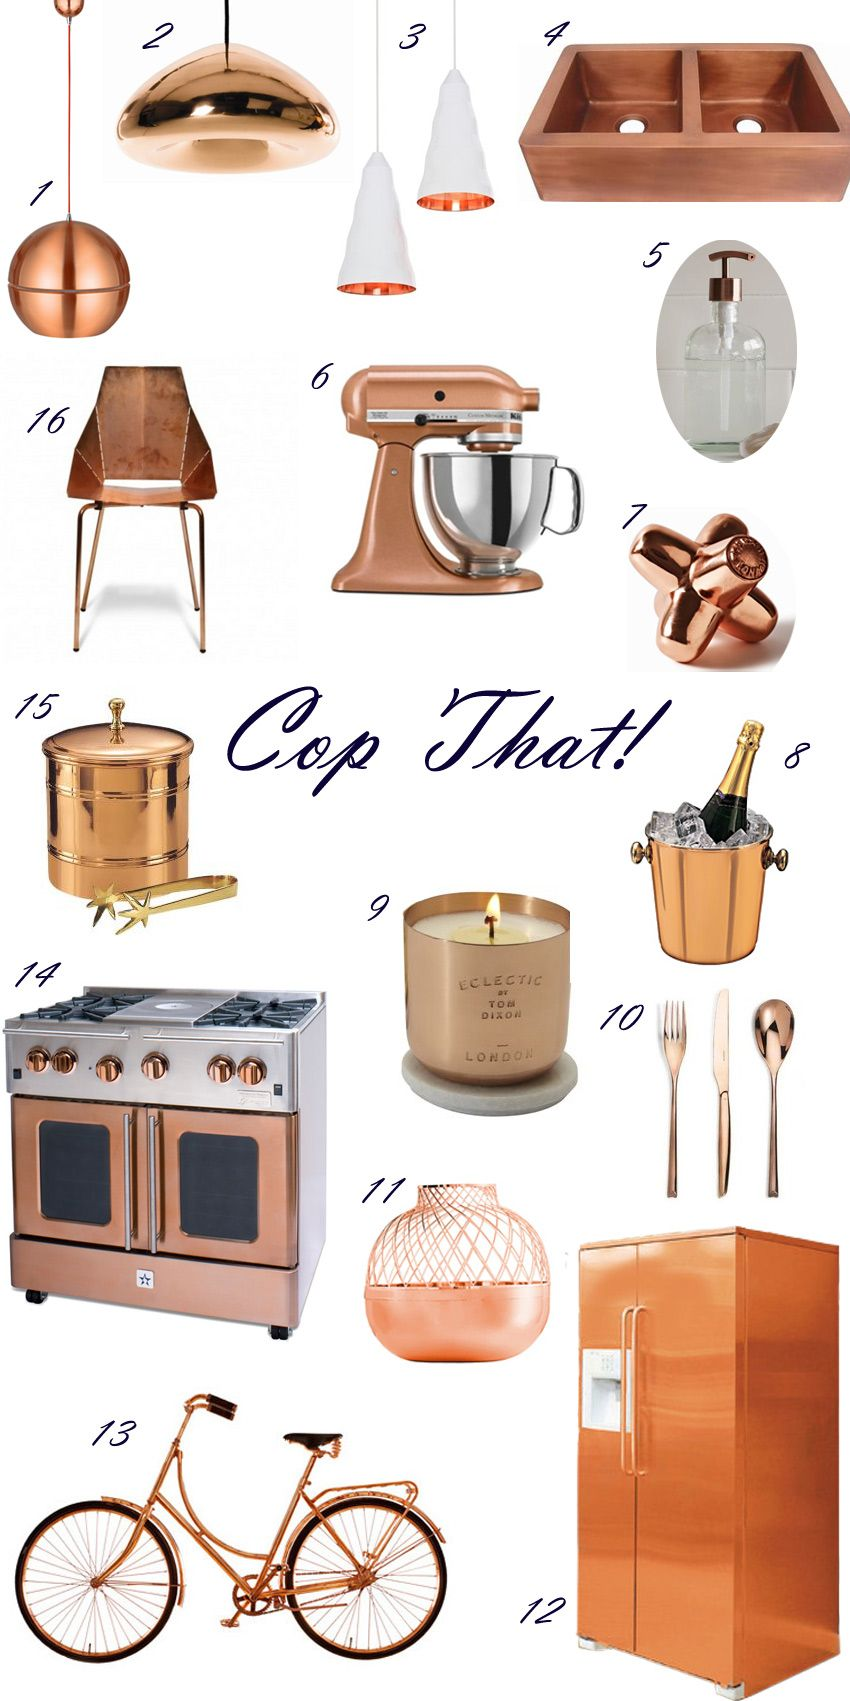 Kitchen With Copper Accents - Google Search